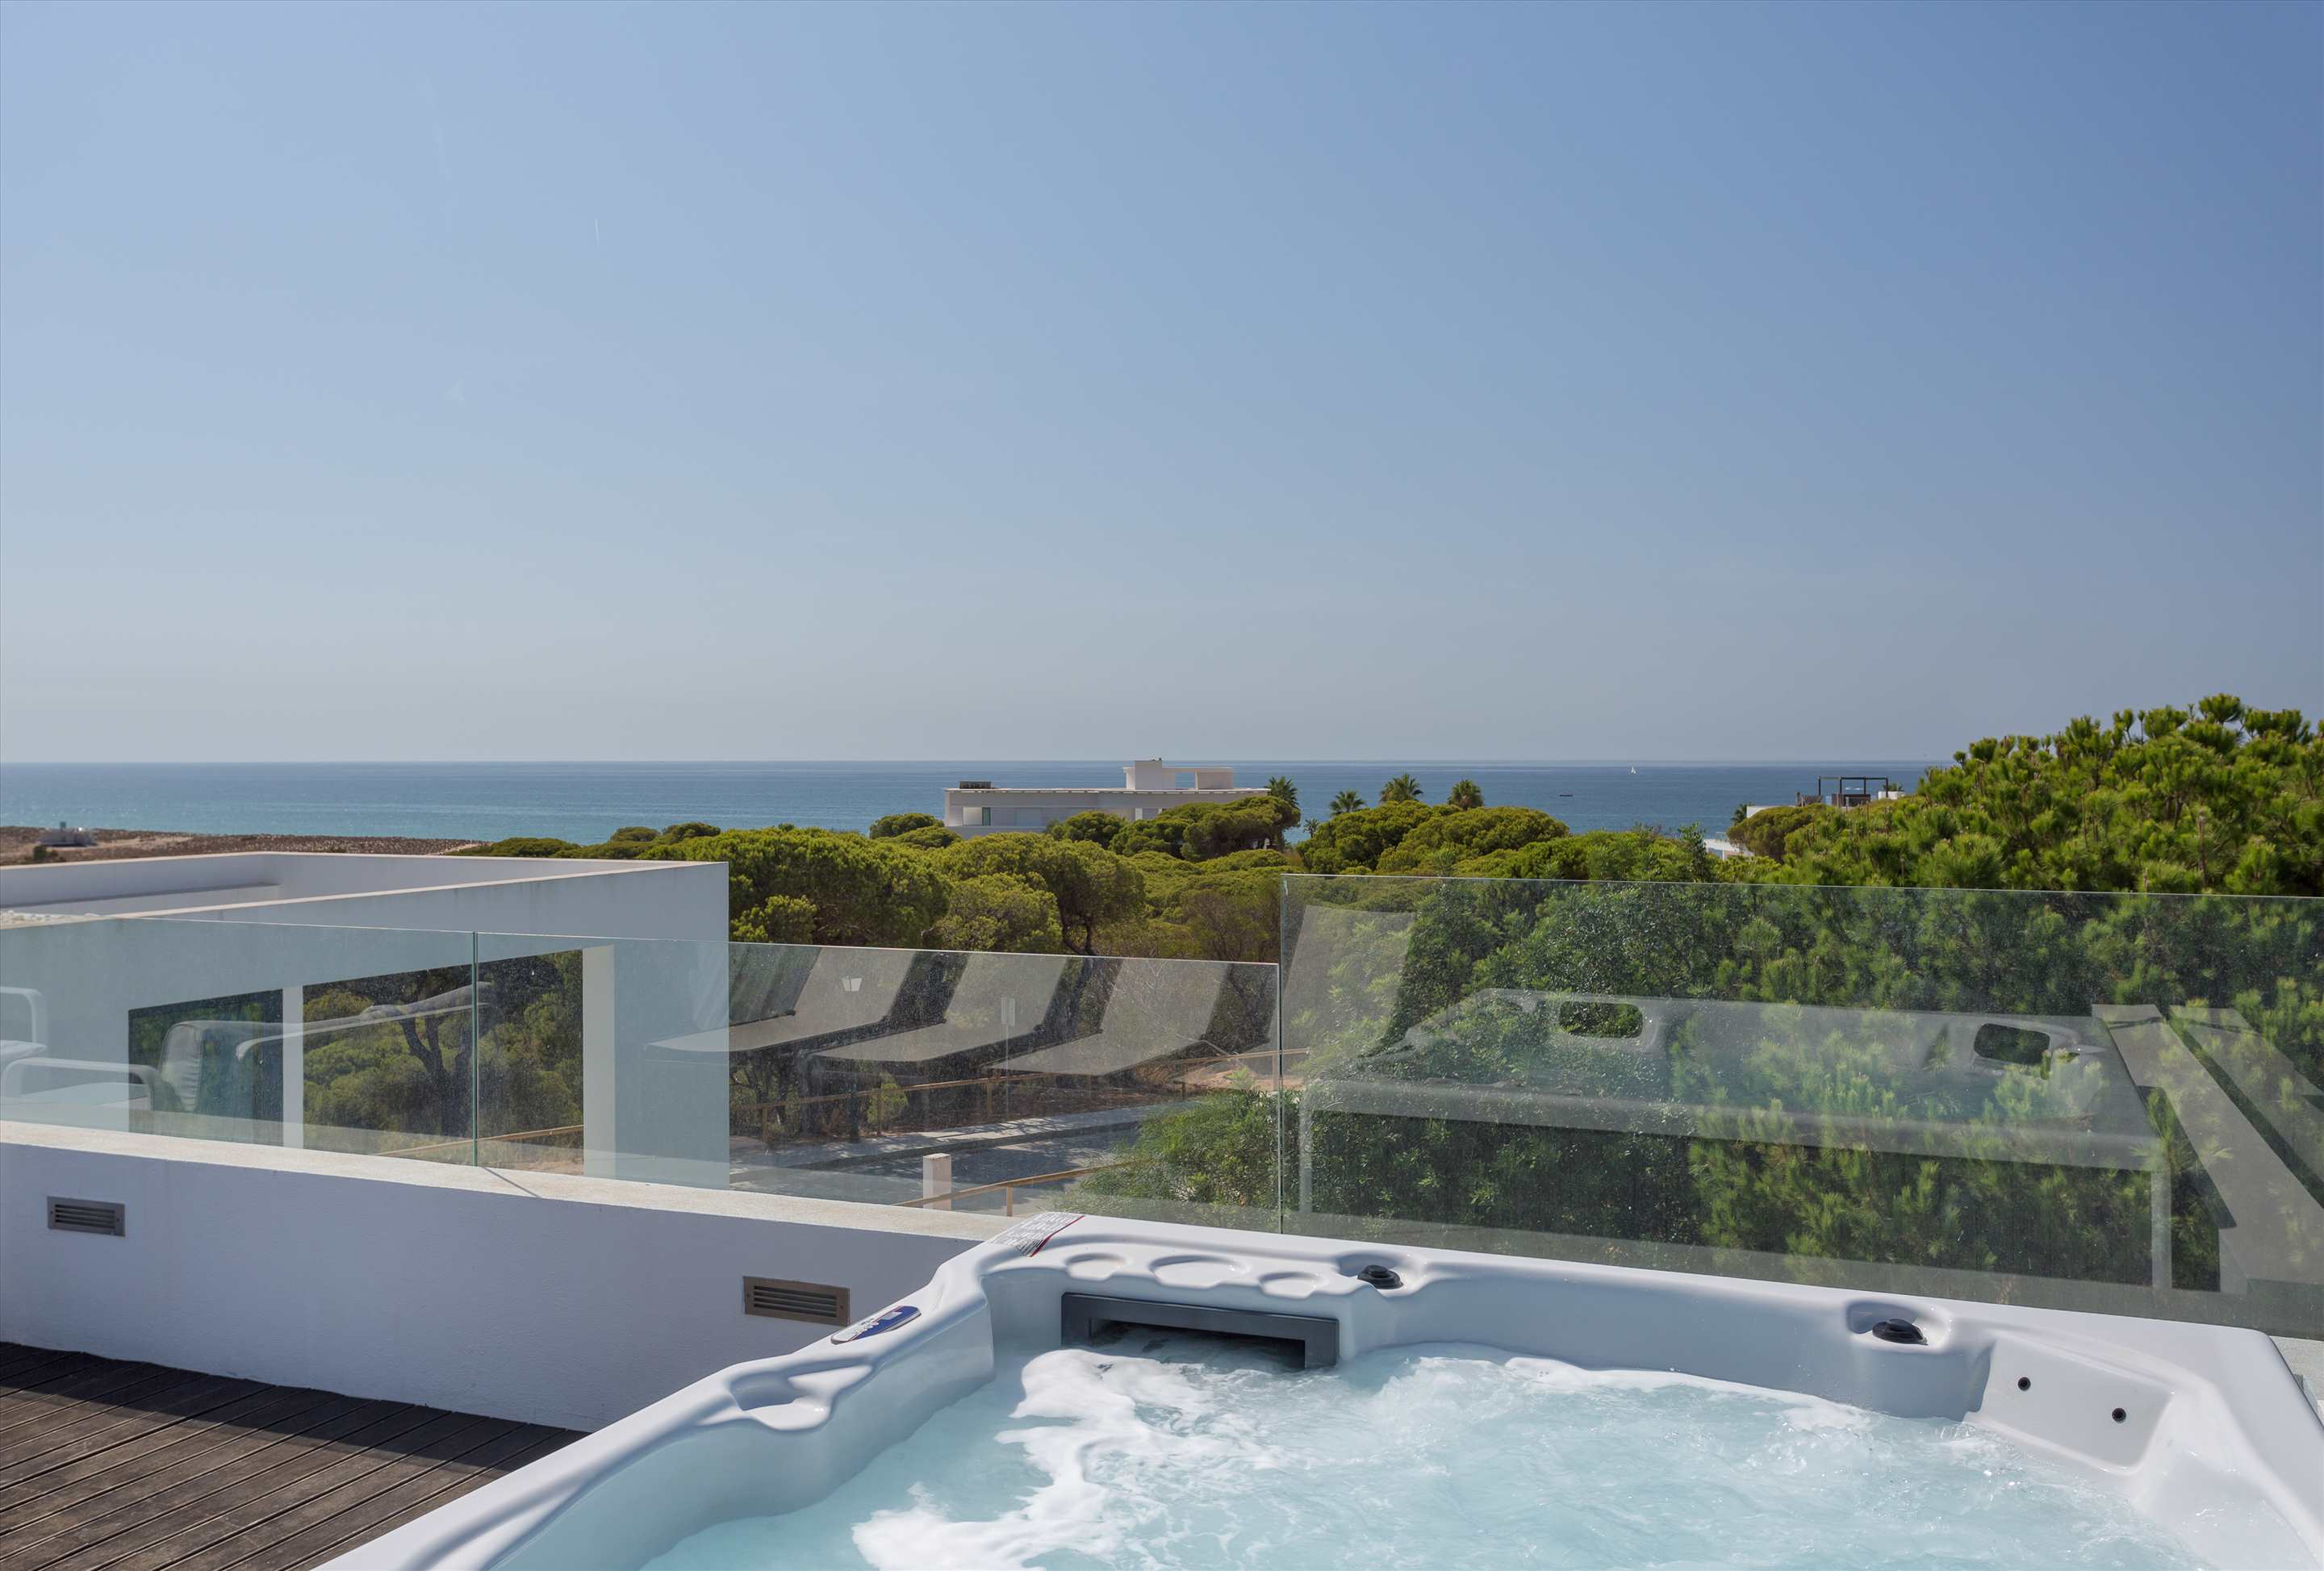 Villa Gemini, 4 bedroom villa in Vale do Lobo, Algarve Photo #3